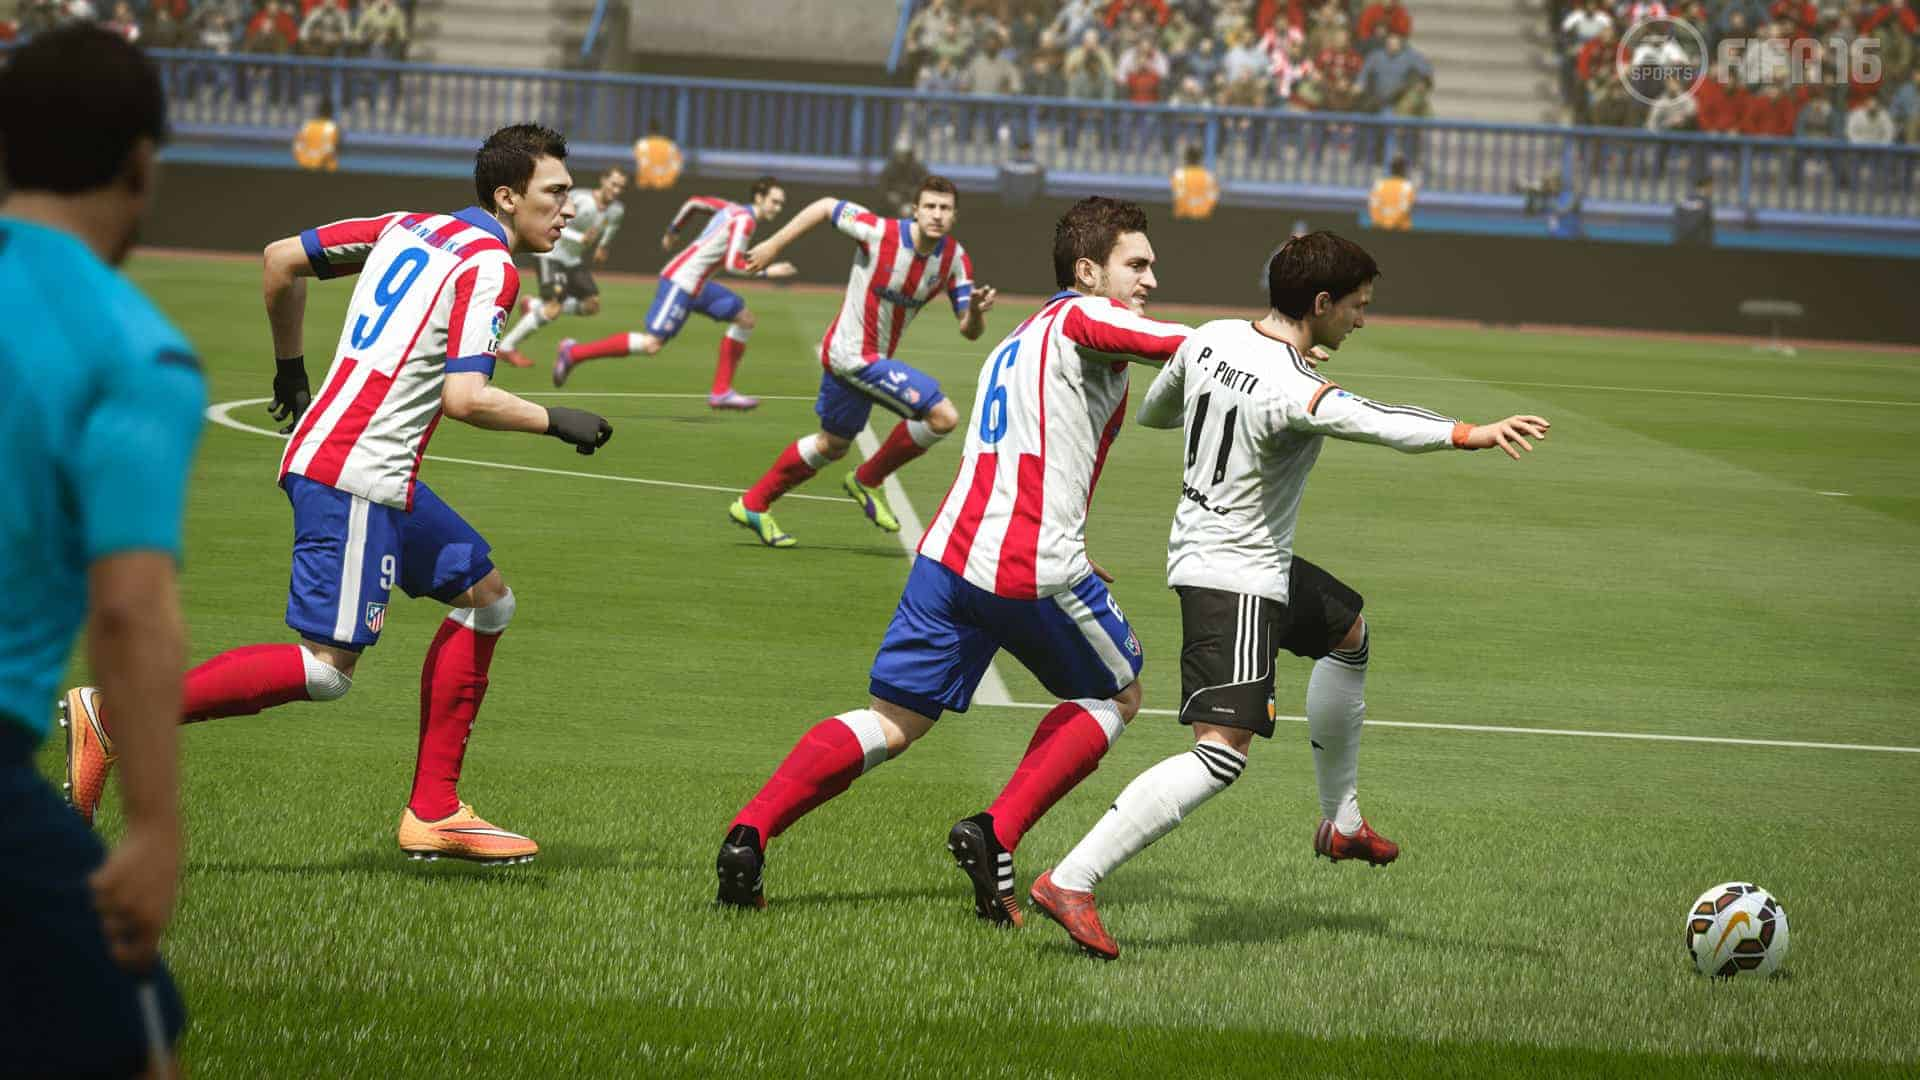 fifa 16 full version free download for pc